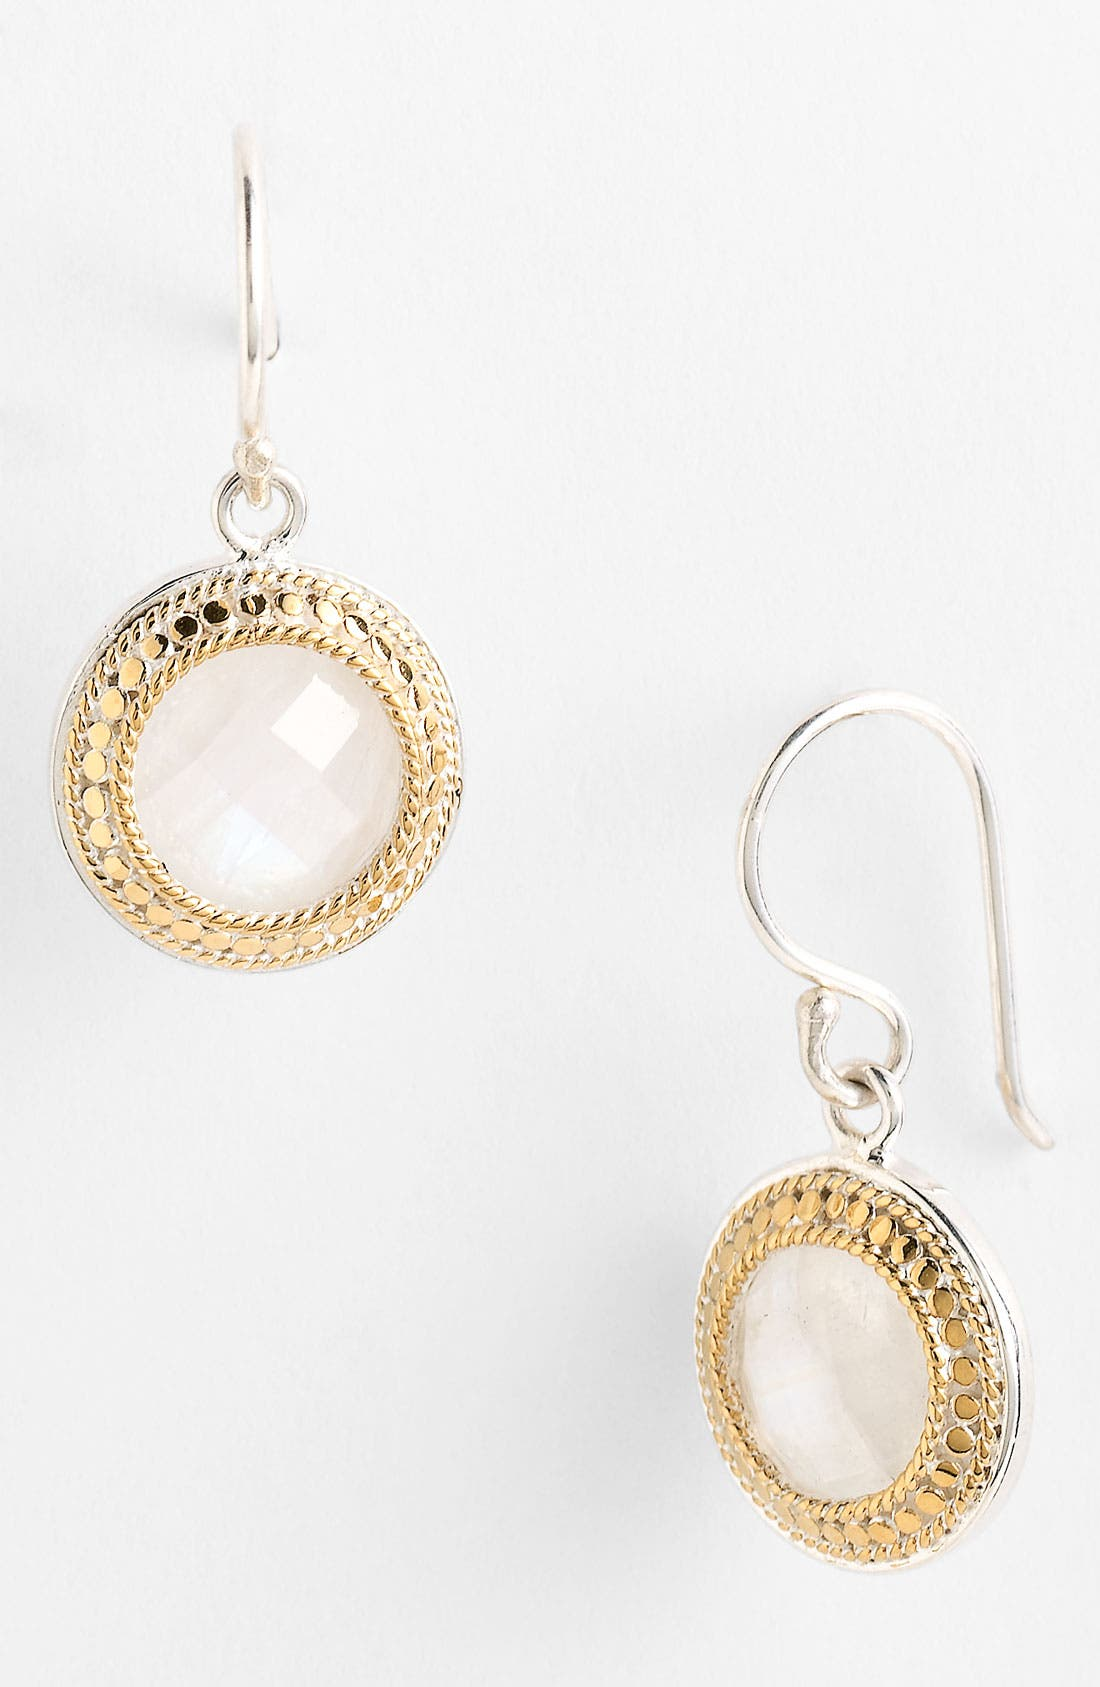 Main Image - Anna Beck 'Gili' Small Stone Drop Earrings (Nordstrom Exclusive)